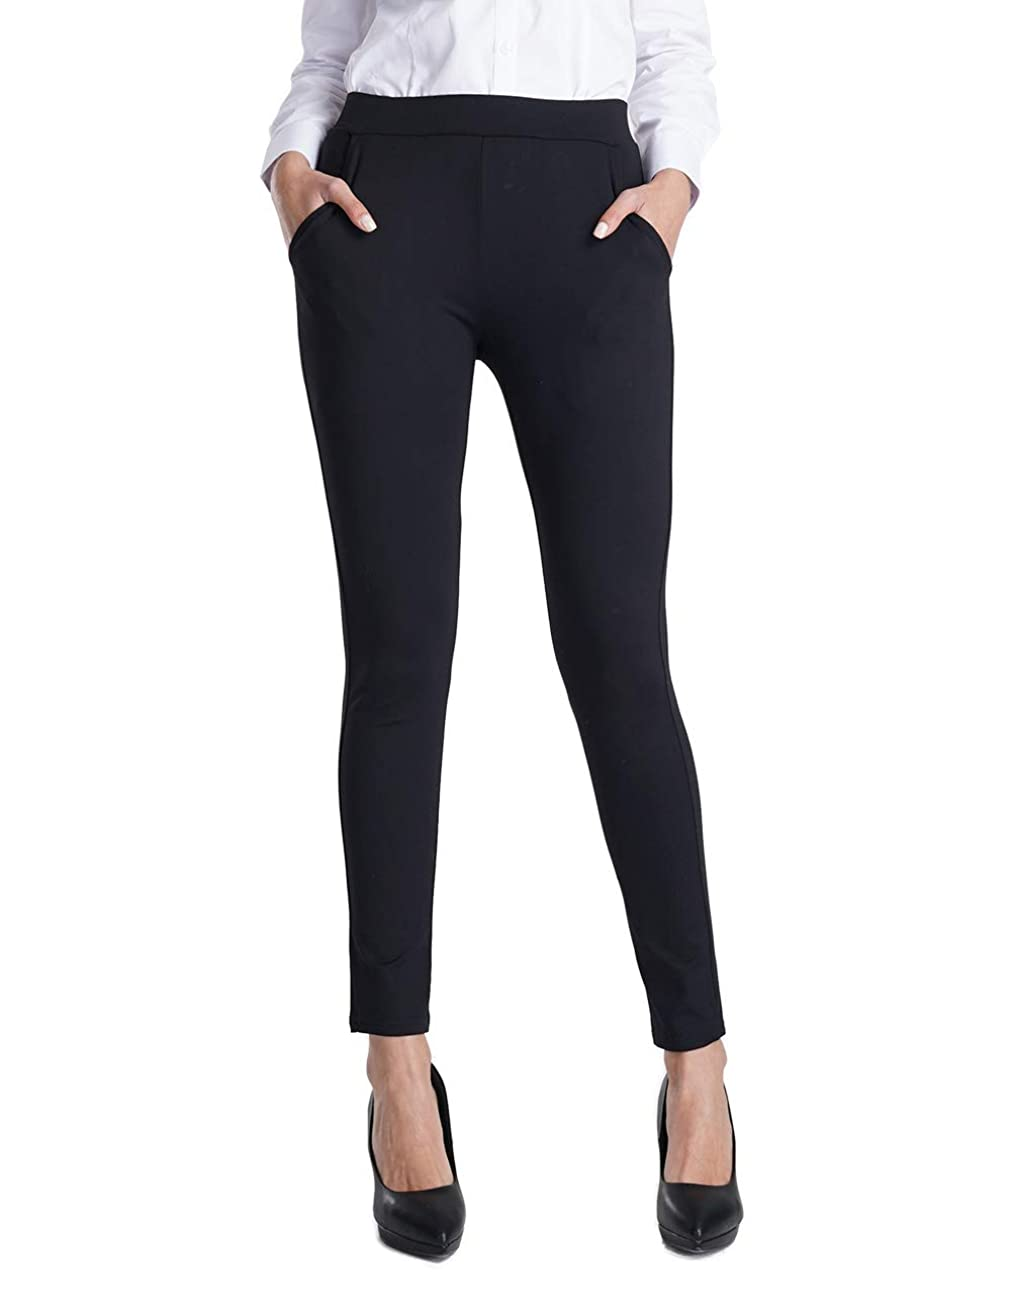 Balleay Art Women's Stretch Slim Ankle Fit Comfort Office Yoga Dress Pants w/Out Pocket & Tummy Control